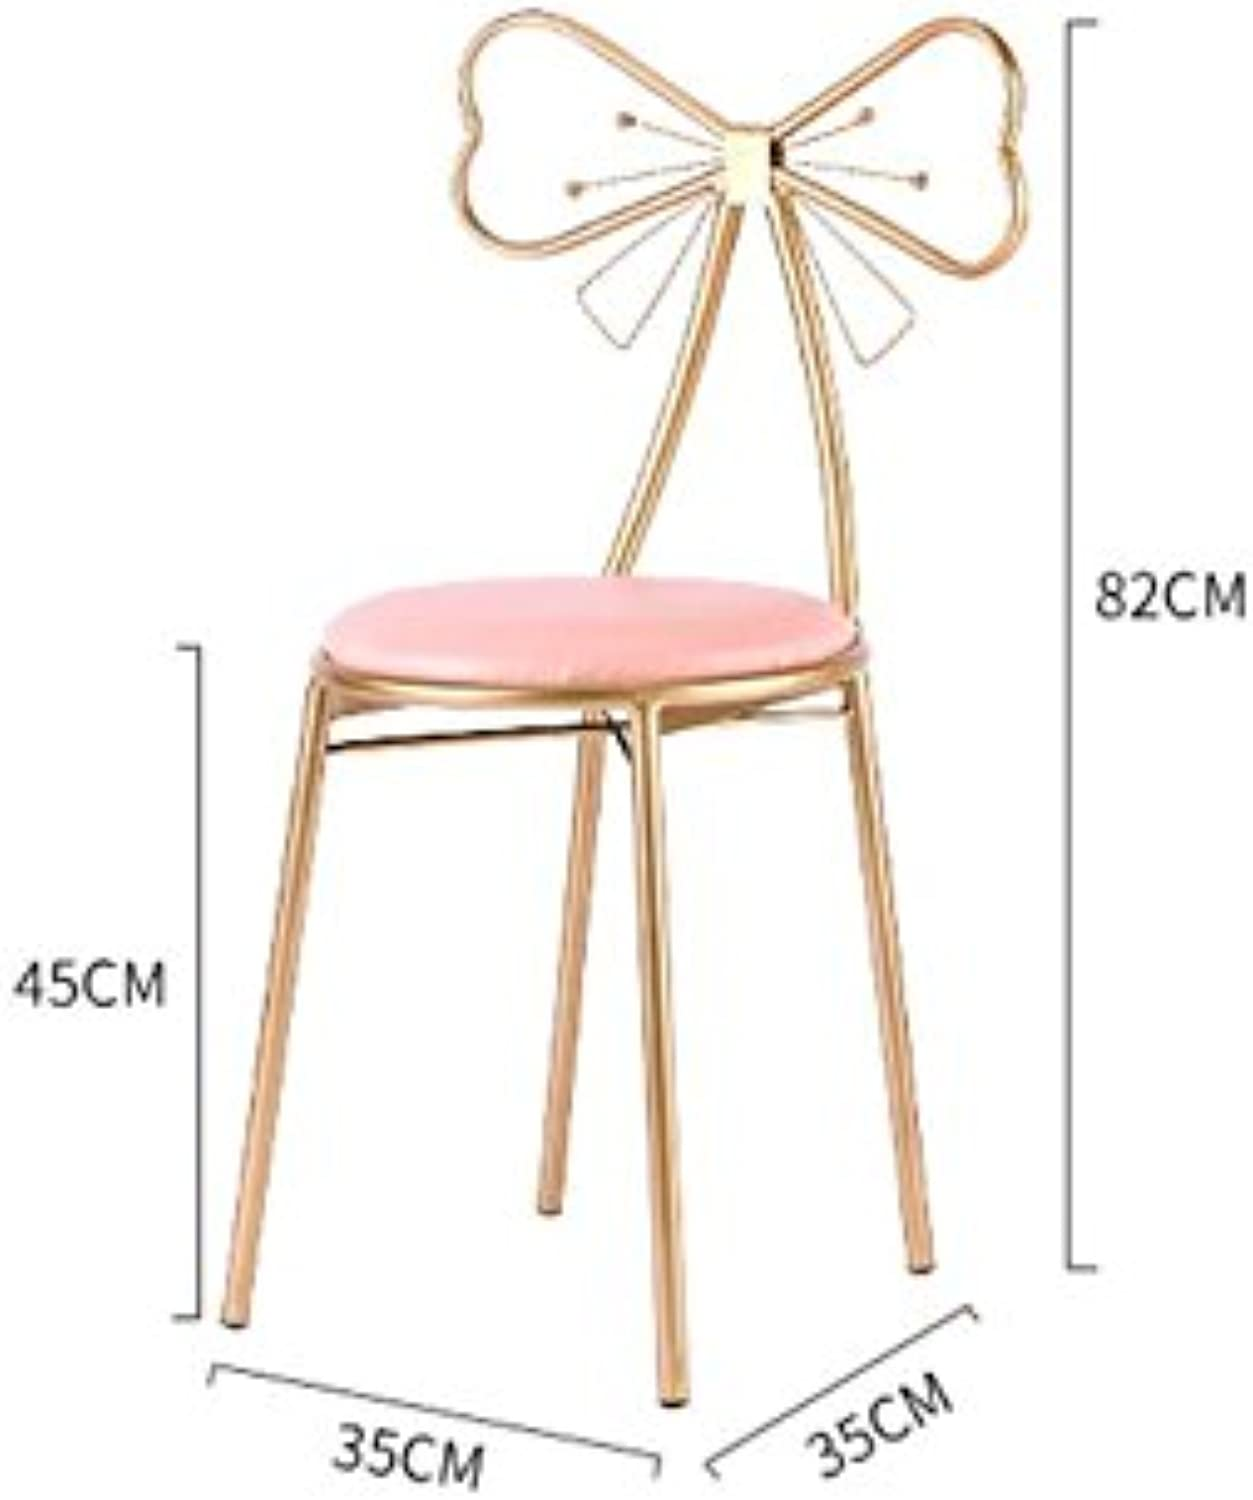 DQMS Makeup Stool, Household Bow Tie Dining Chair Bar Chair Metal Chair Bedroom Change shoes Dressing Table Chair 35  35  82CM Decorative Lounge Chair (color   B)